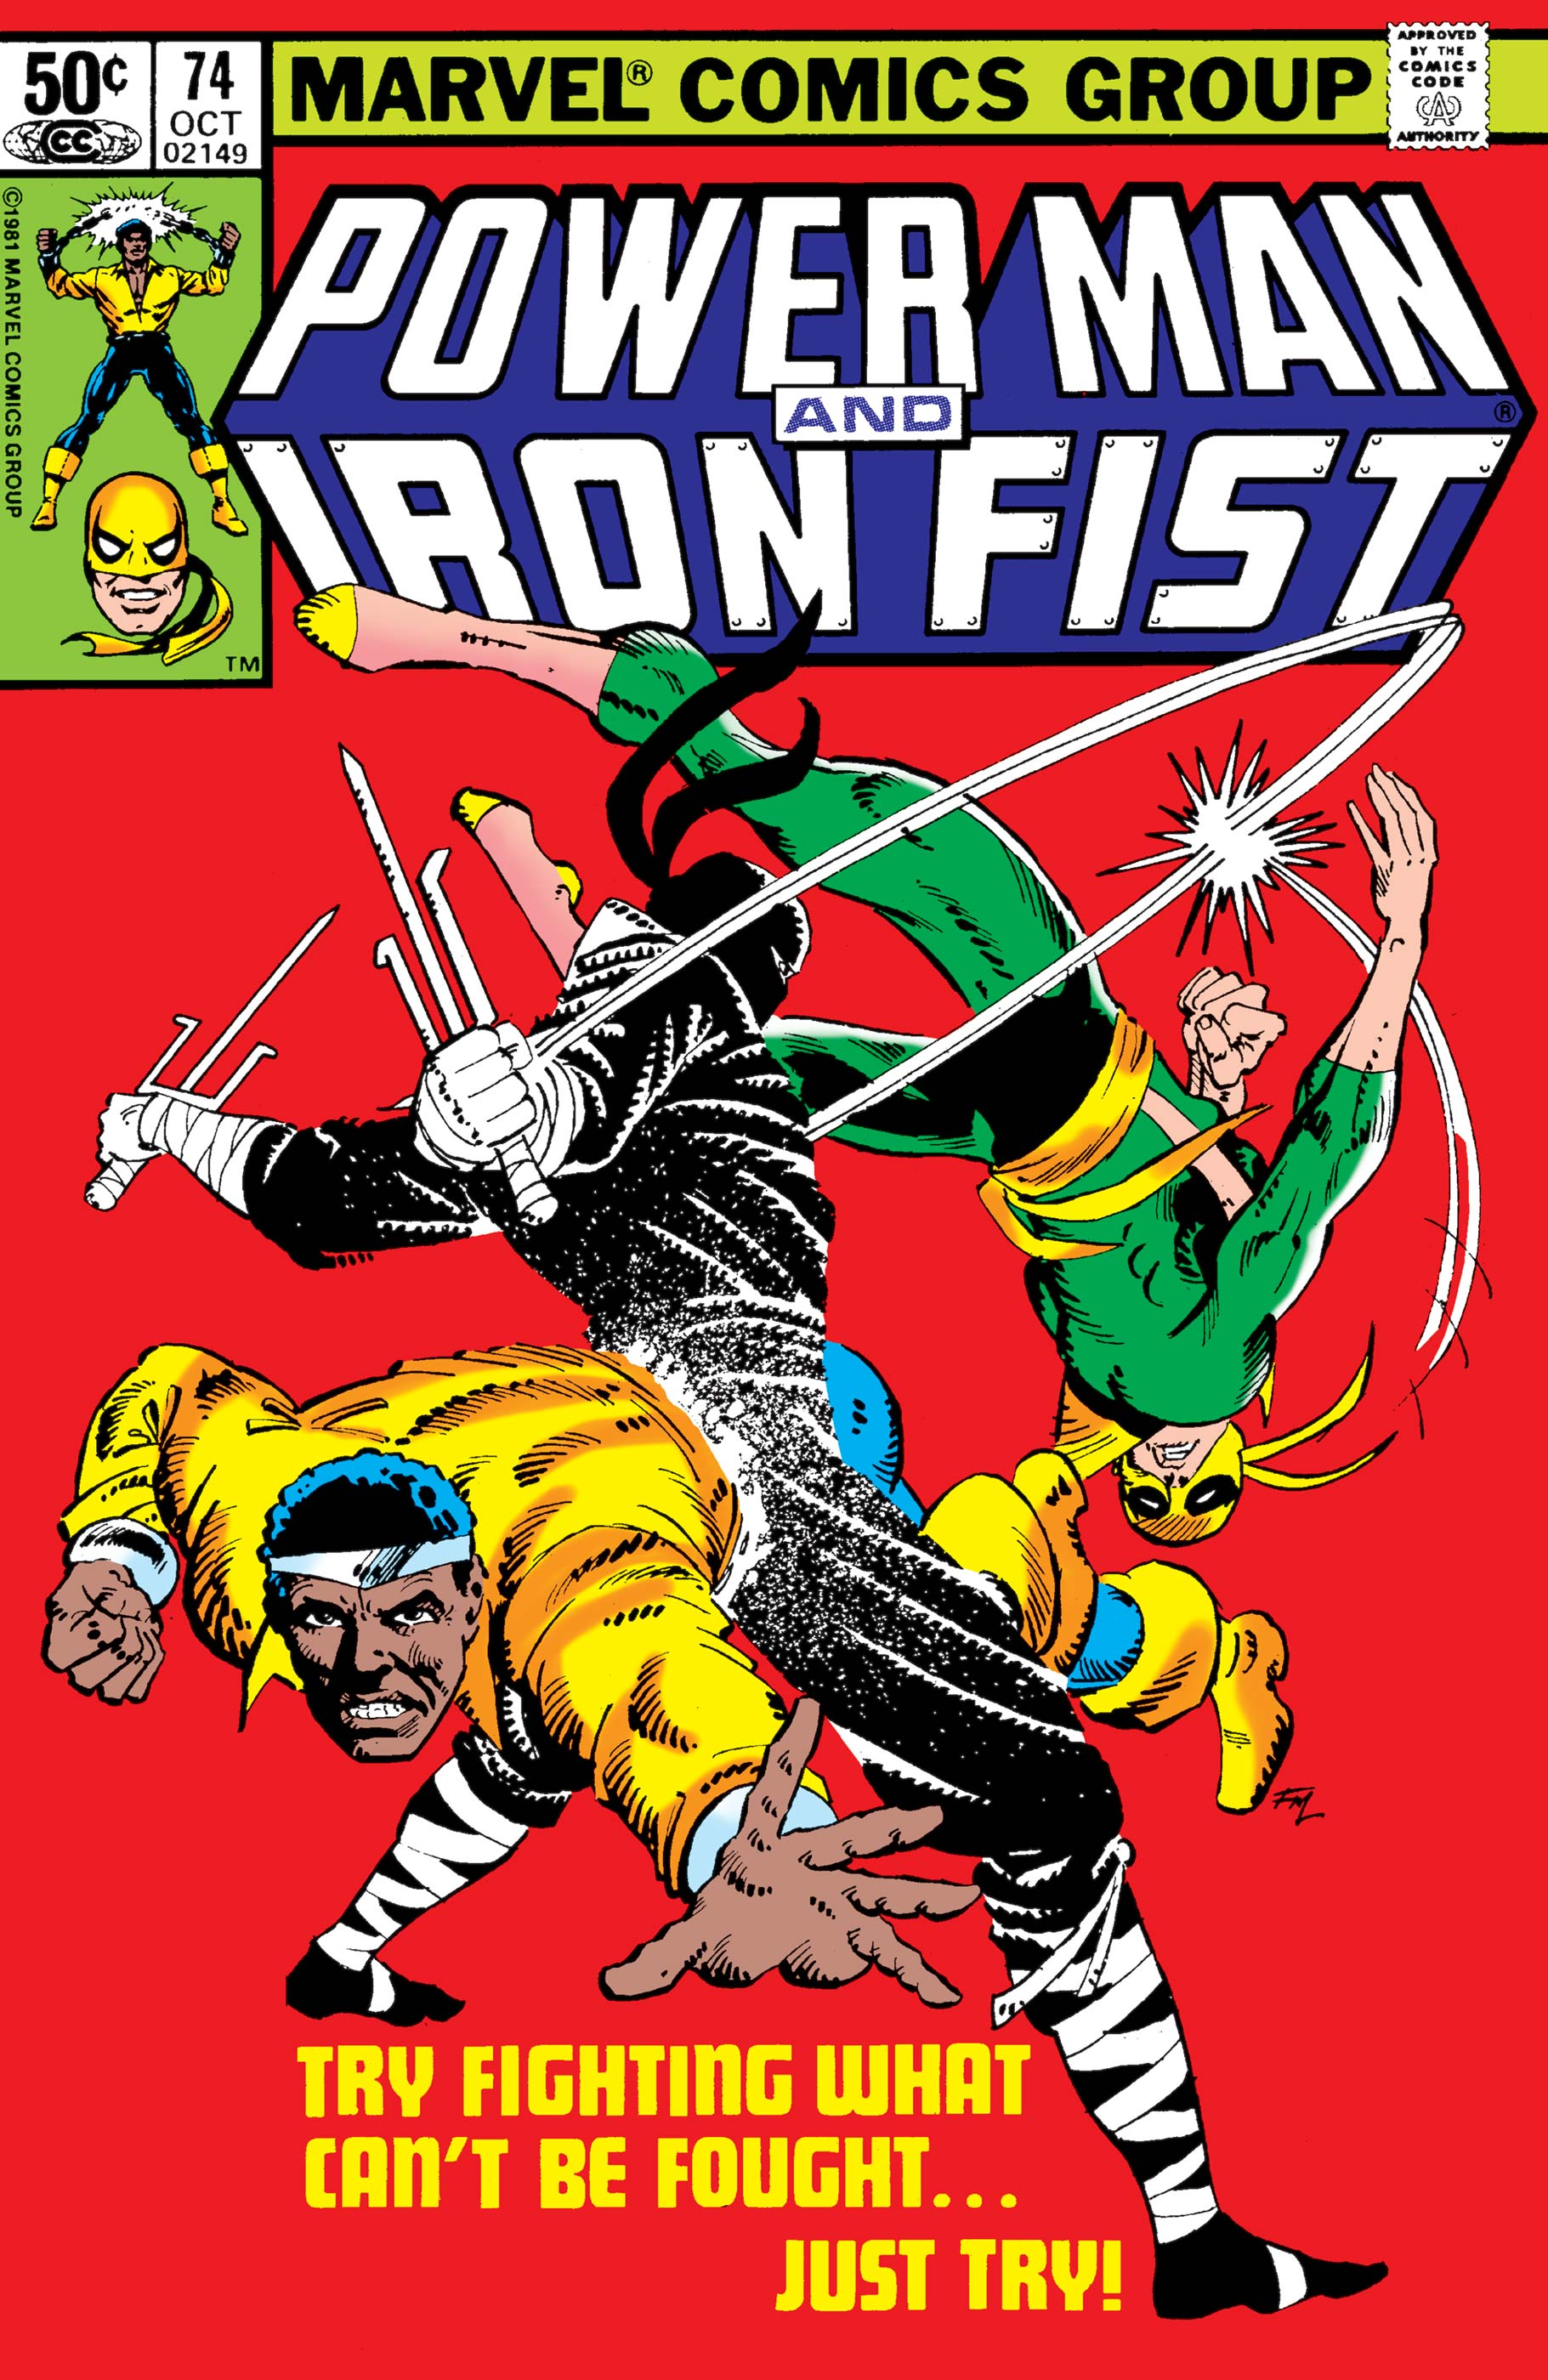 Power Man and Iron Fist (1978) #74